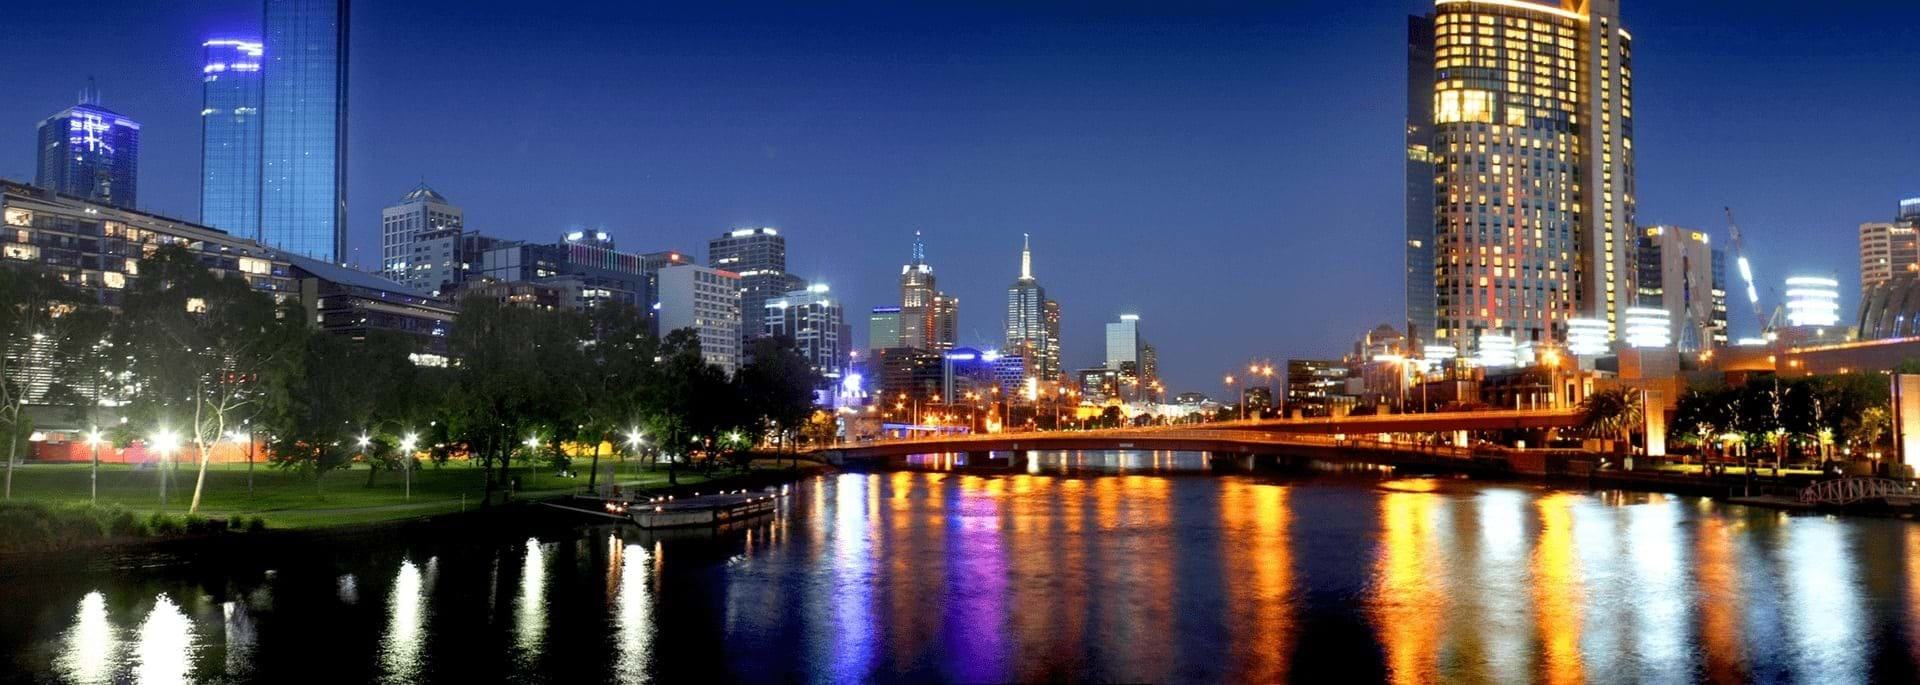 Physiotherapy Clinics across Melbourne